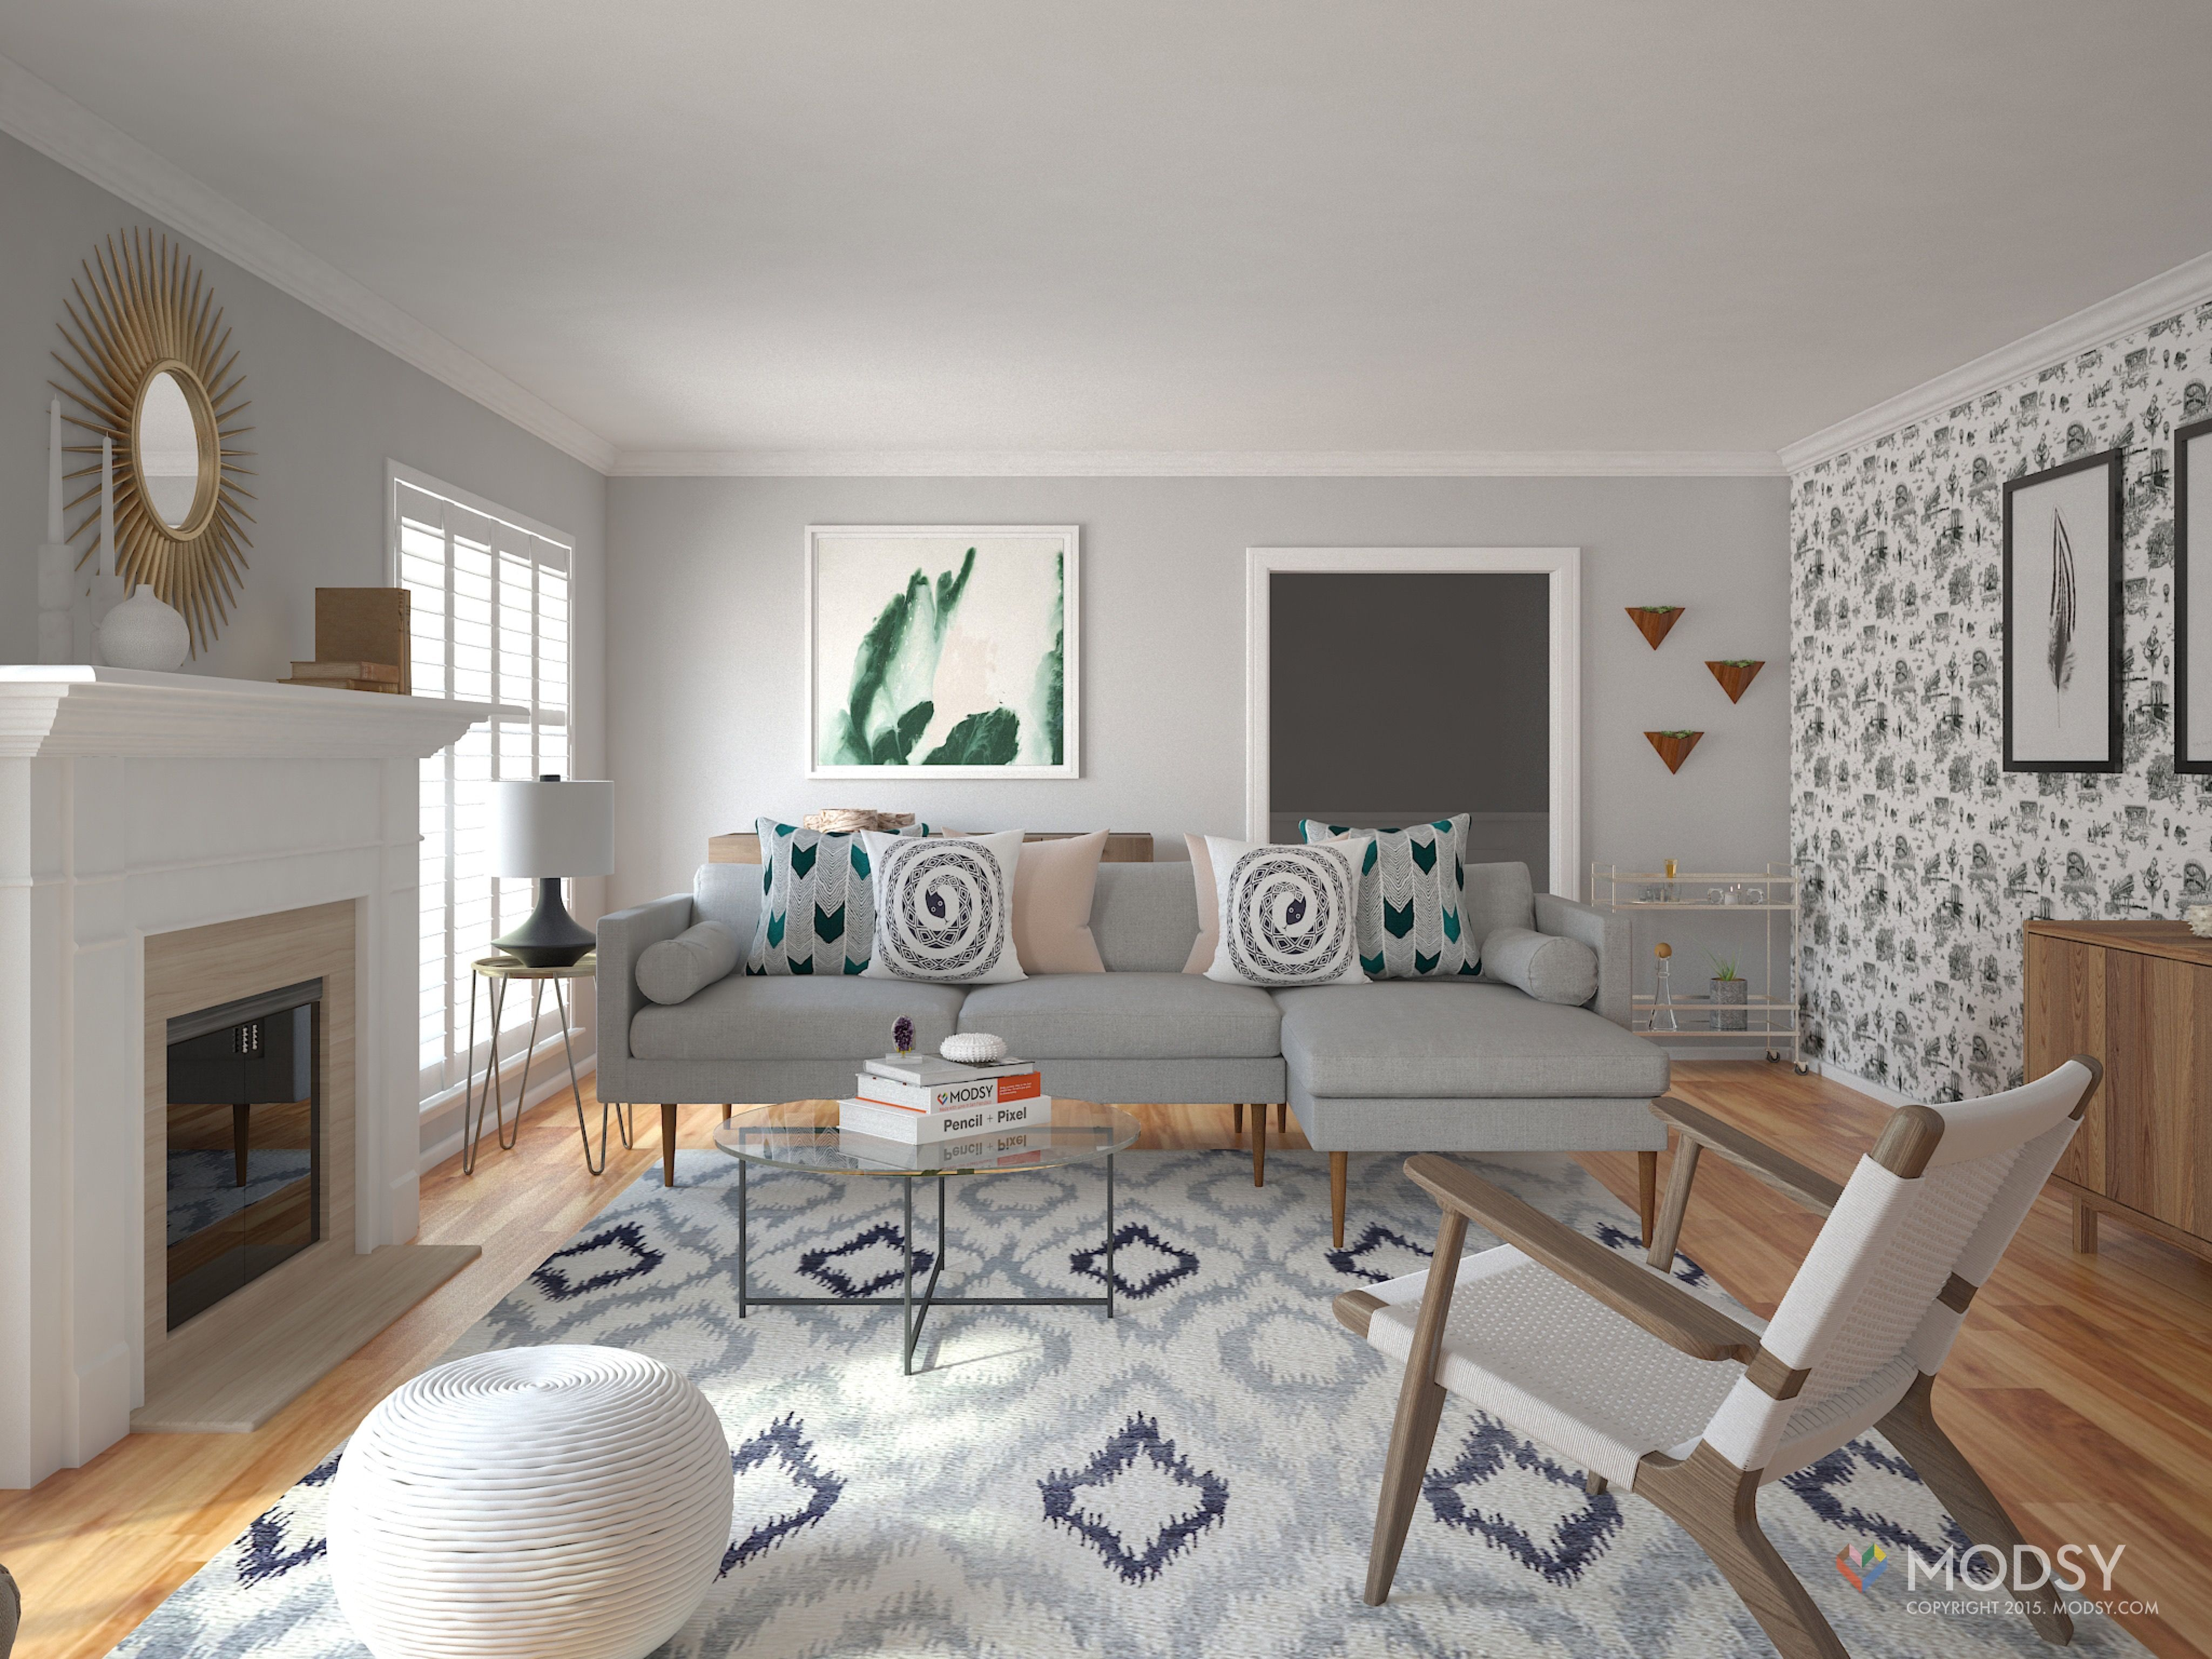 living room minimalist home design ideas living room minimalist 9 minimalist living room decoration tips modsy 3d rendering minimalist eclectic living room